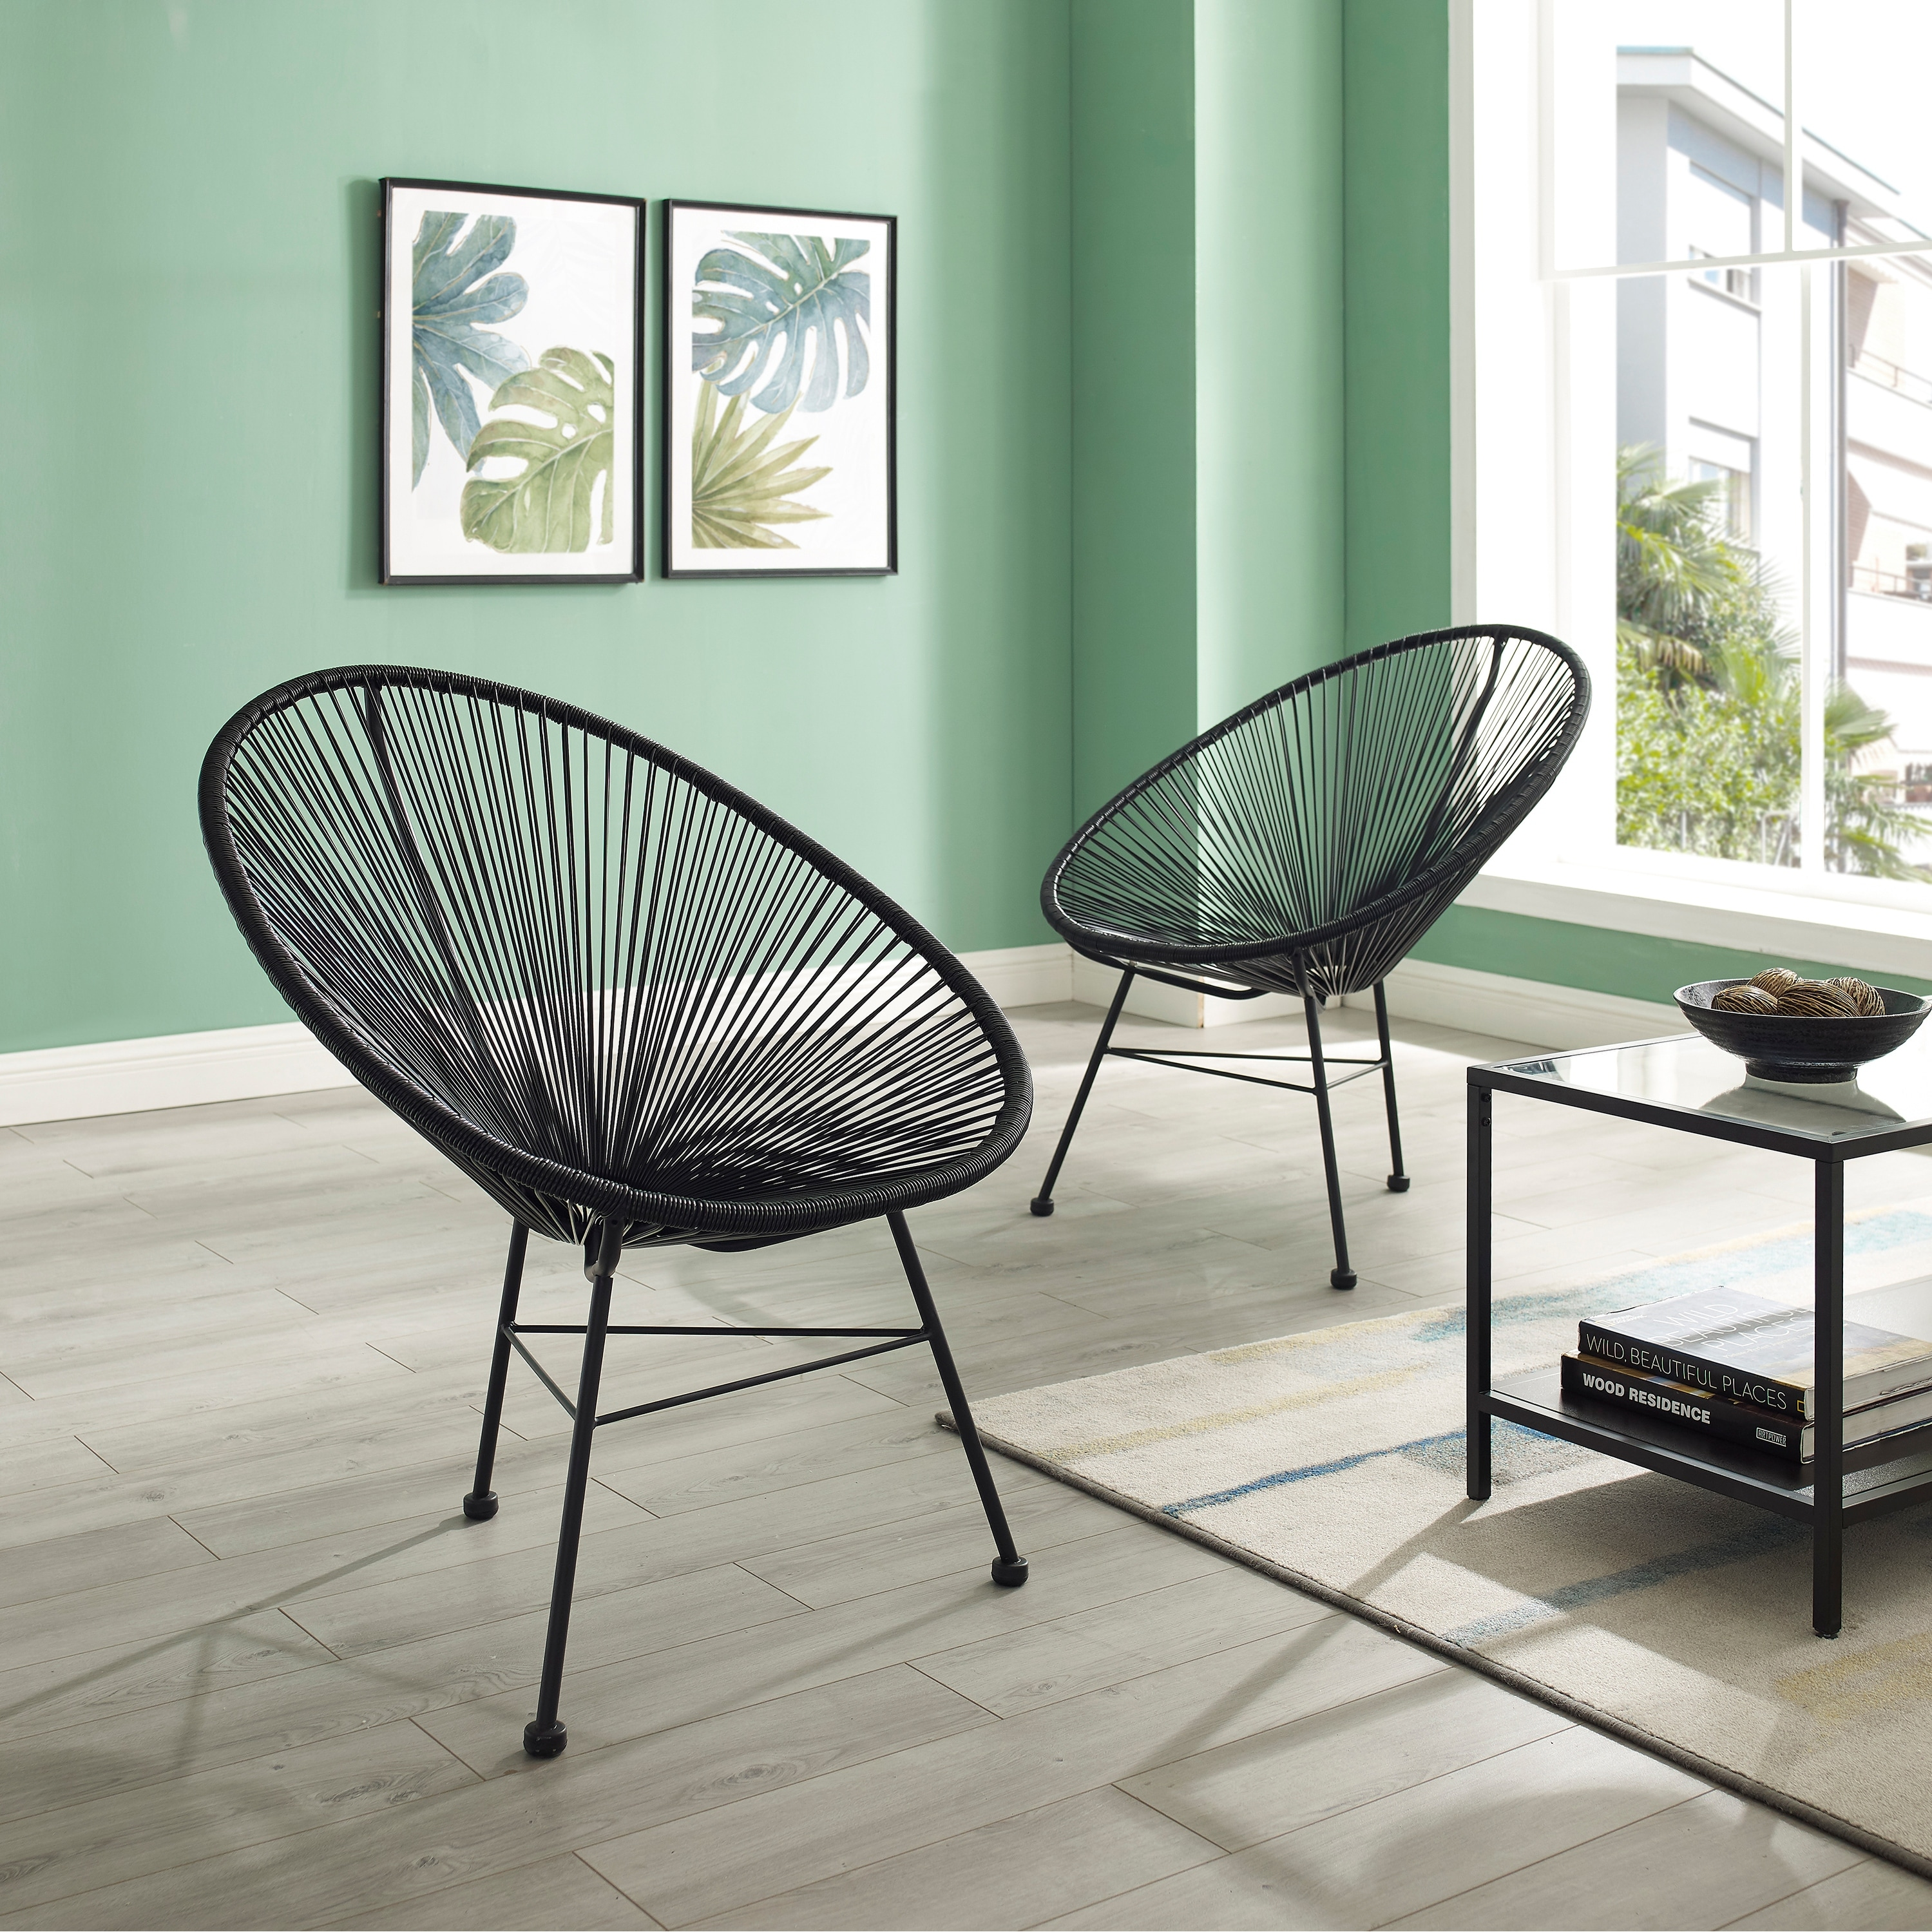 Sarcelles Modern Wicker Patio Chairs by Corvus (Set of 2 ...